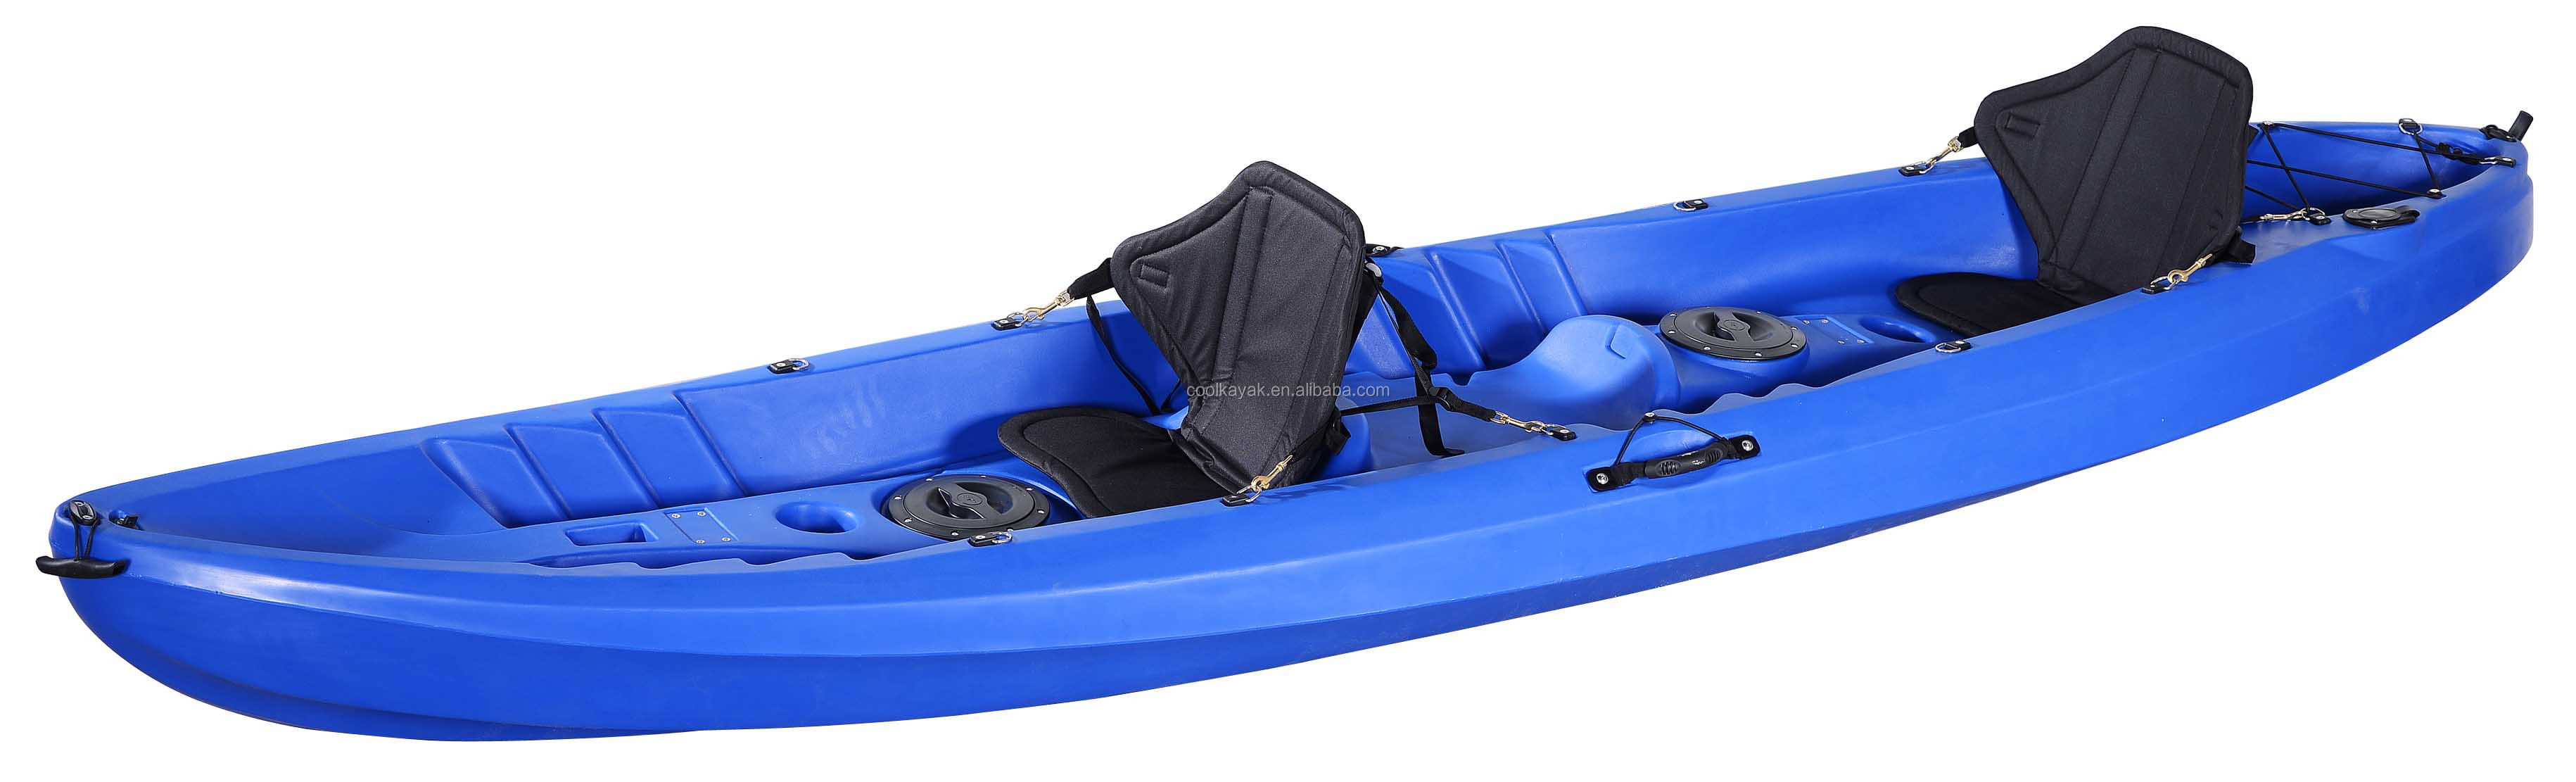 2 1 person sit on top fishing kayak view 2 person kayak for Sit on top fishing kayaks